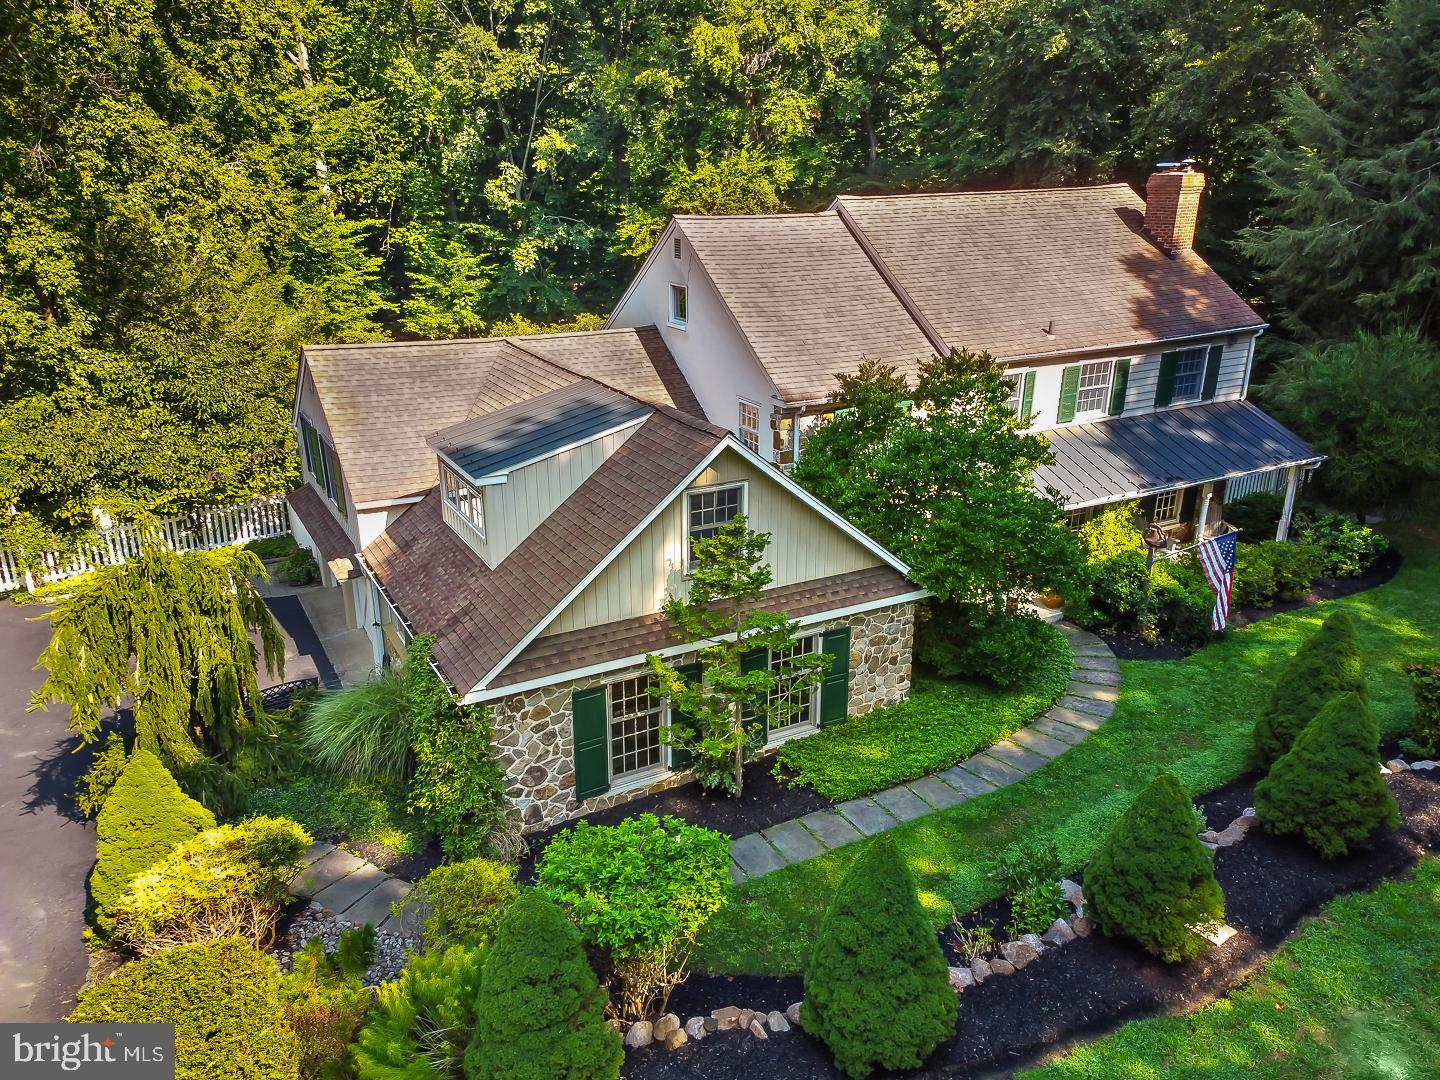 """Stunning 5 bedroom, 2.3 bath custom Colonial in desirable Echo Valley! Imagine owning this private and serene oasis which incorporates each element of outdoor living with exquisite planning and foresight! Whether you are drawn in by  the pool, the lush  gardens, or the backdrop of the mature trees with views of the two waterfalls and koi pond, your """"great escape"""" is as far as your back door!  Stroll over two bridges  while enjoying the woods and  walking trail. The key to this tranquil setting is that it is manageable, modernized and lovingly maintained. A spacious  floor plan greets you from the moment you walk into the foyer adjoined by the lovely living room to the right and a sizable formal dining room to your left. Adjacent to the dining room is a huge entertaining room which includes the pool table and built- in surround sound. The heart of the home is the kitchen and dramatic great room and wonderful bright sunroom! The kitchen is perfect for the seasoned chef with abundant cabinets, center island, ample  counter space and storage. Ideal for large or small gatherings, this space transitions seamlessly  to the custom eating area and two story Great Room with a wrap around deck. The great room is accentuated by exposed wood beams, brick floors, wood burning fireplace and is  bathed in natural light from the abundant windows and French doors that lead to the deck. Enjoy the spectacular view of the amazing backyard. The main level is completed by the hall bath, large laundry room and wet bar which has pretty counter tops and glass overhead cabinets . The second floor has 4 spacious bedrooms. The main bedroom has a full bath and walk-in closet. The other 3 bedrooms share a hall bath. There is a walk-up floored attic and whole house generator. Don't miss the separate wing upstairs from the kitchen. This 5th bedroom and spacious living area and bath offers multiple opportunities for an au-pair suite, additional primary suite and the list goes on. Convenient heated a"""